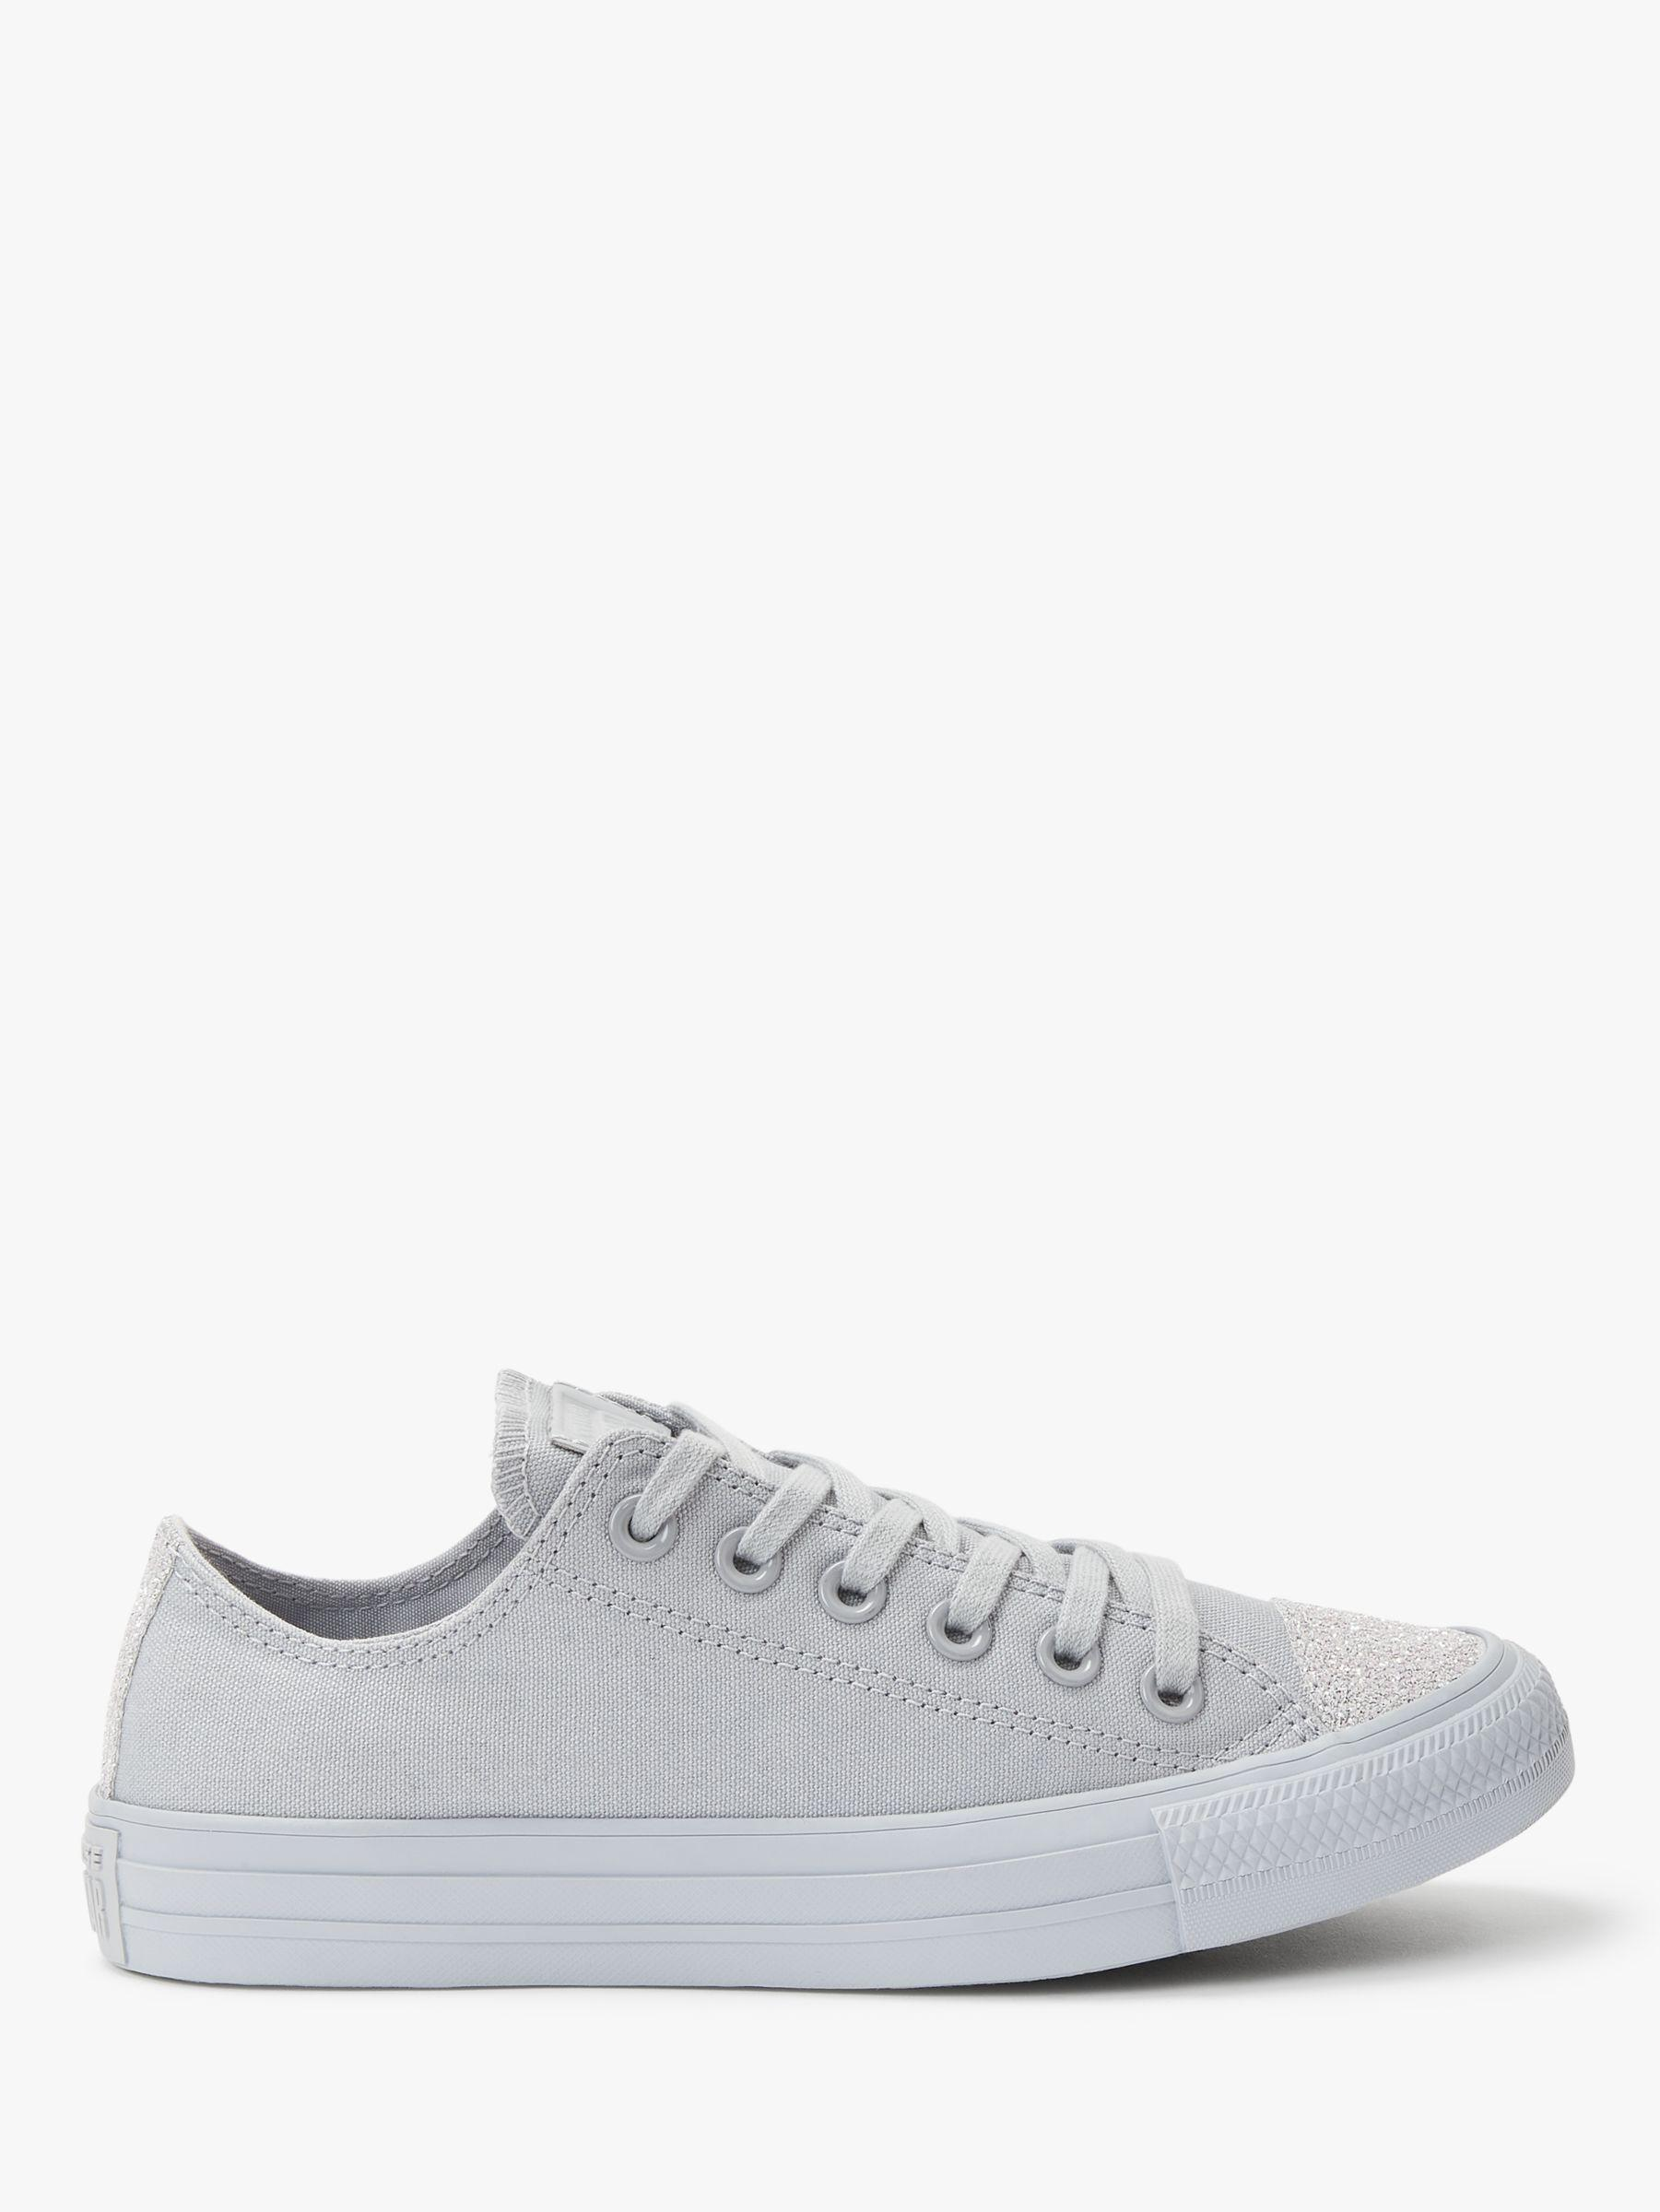 ea3695615afb Converse Women s Chuck Taylor Glitter Trainers in Gray - Lyst